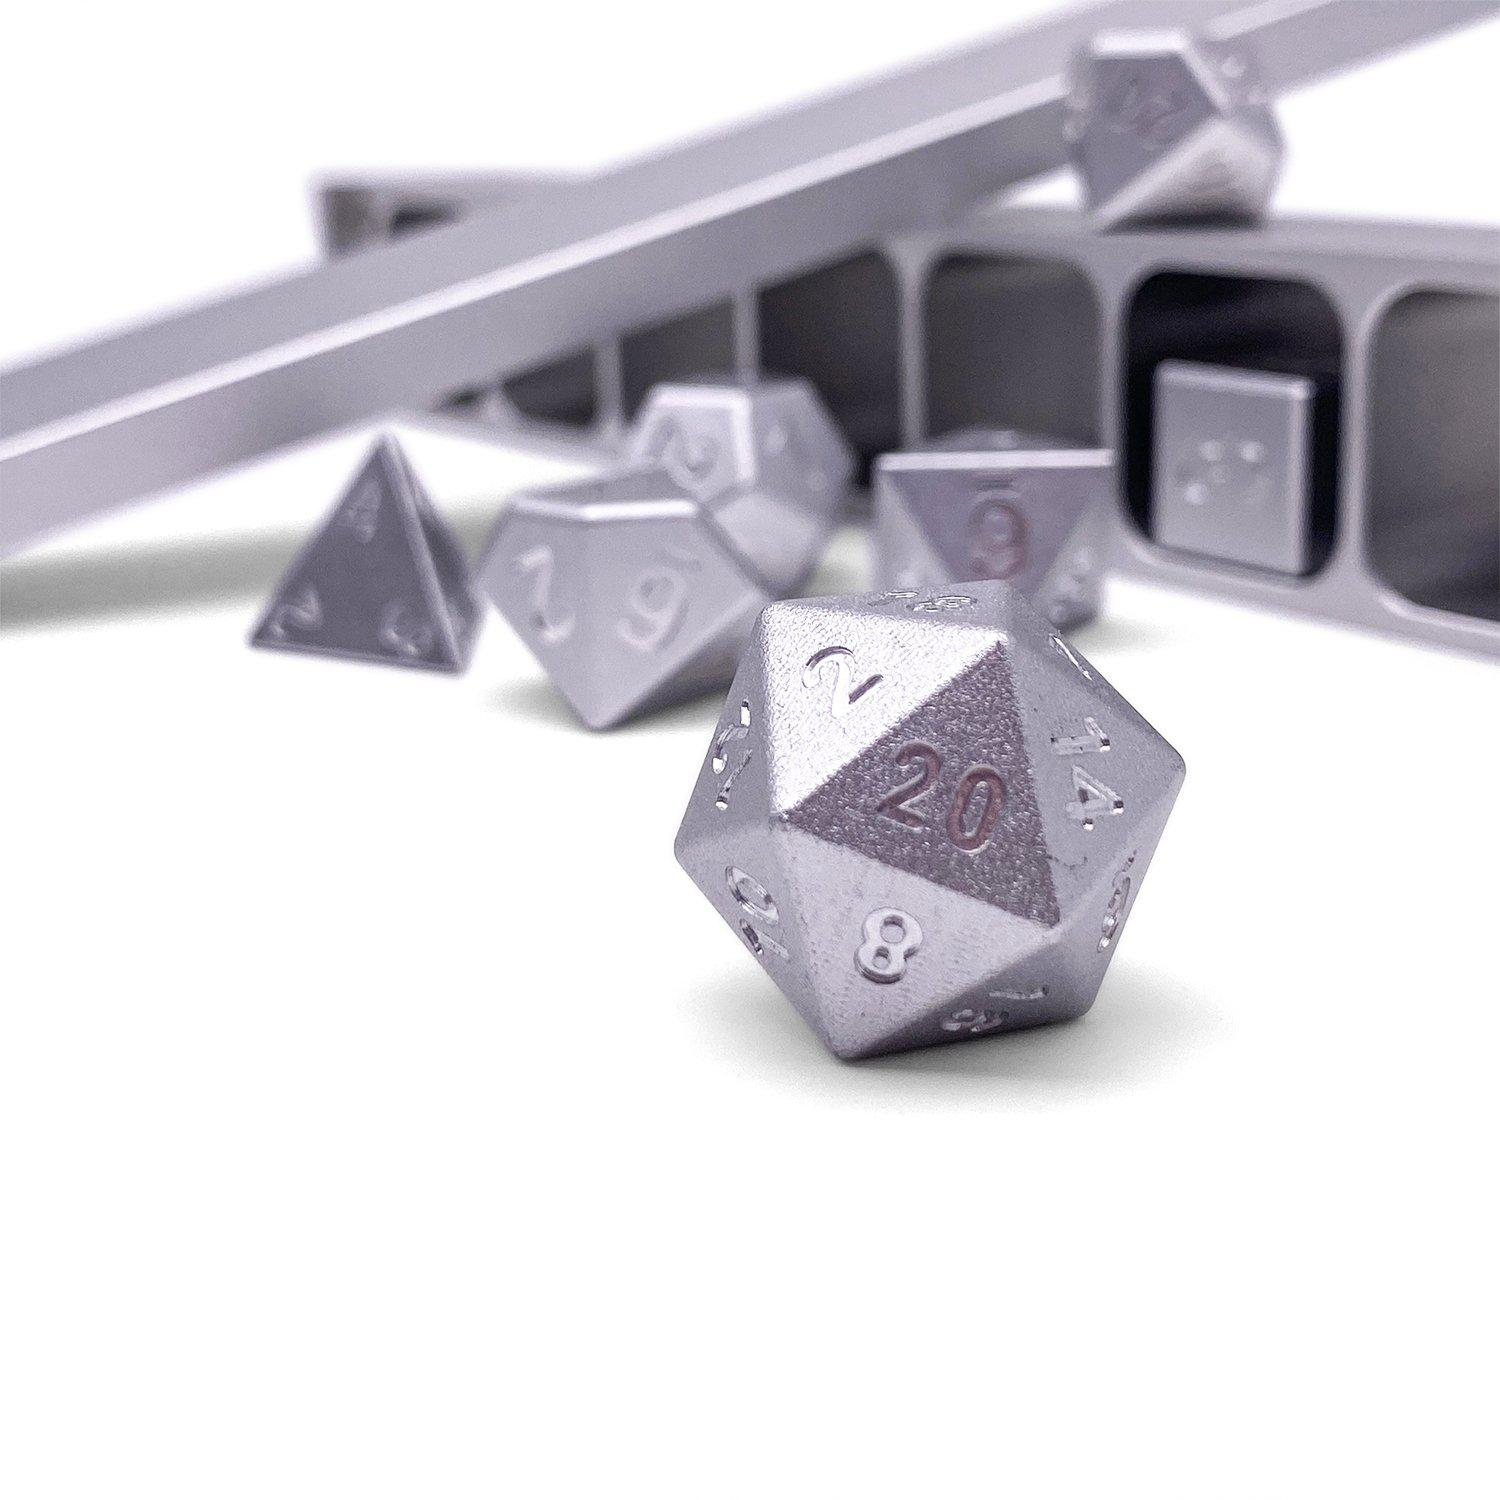 Precision CNC Aluminum Dice Set with Dice Vault – Mithiral Silver